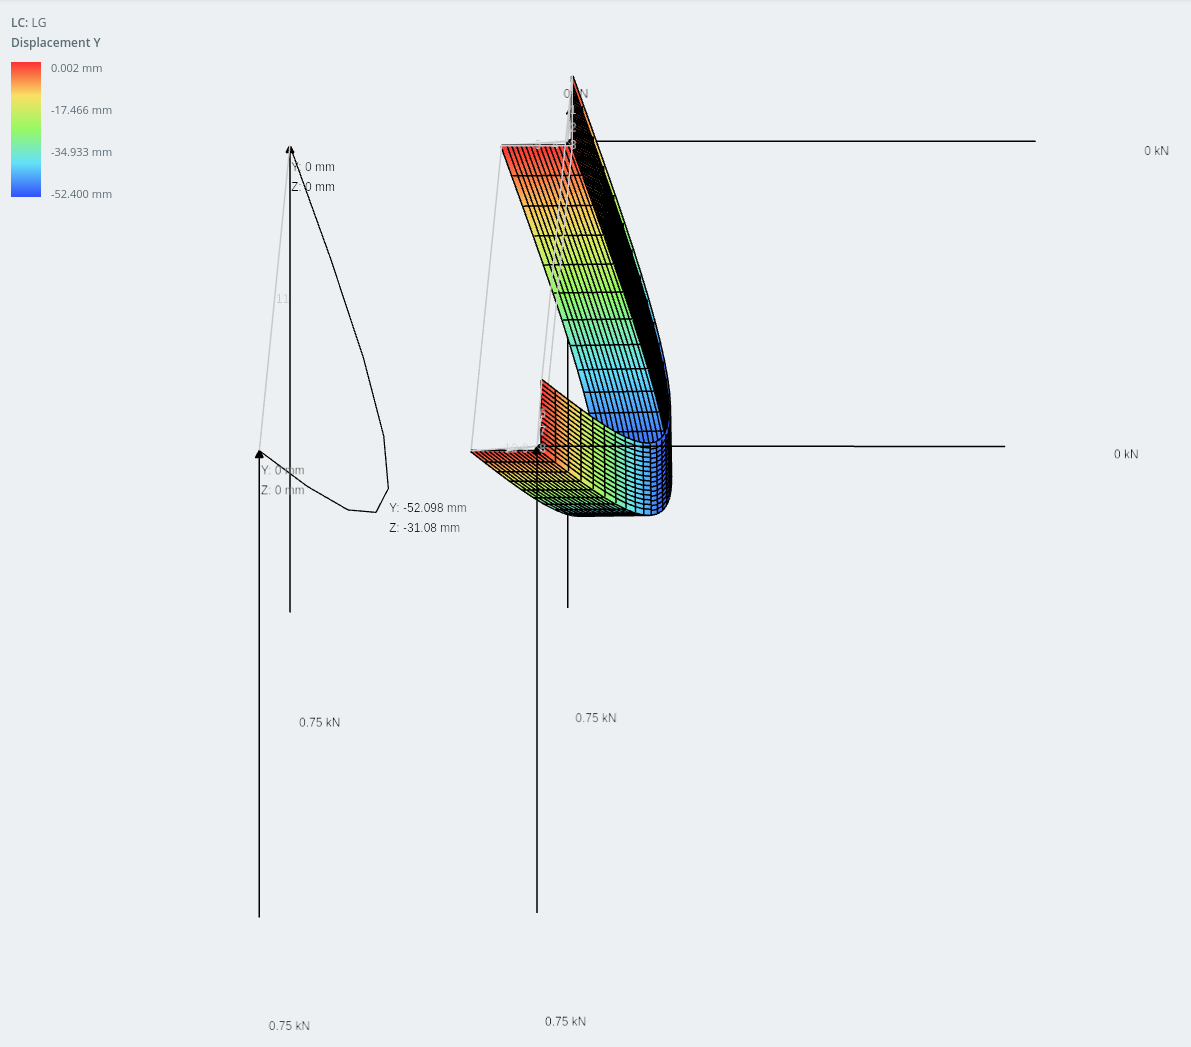 Displacement in the vertical direction - Asymmetrical sections